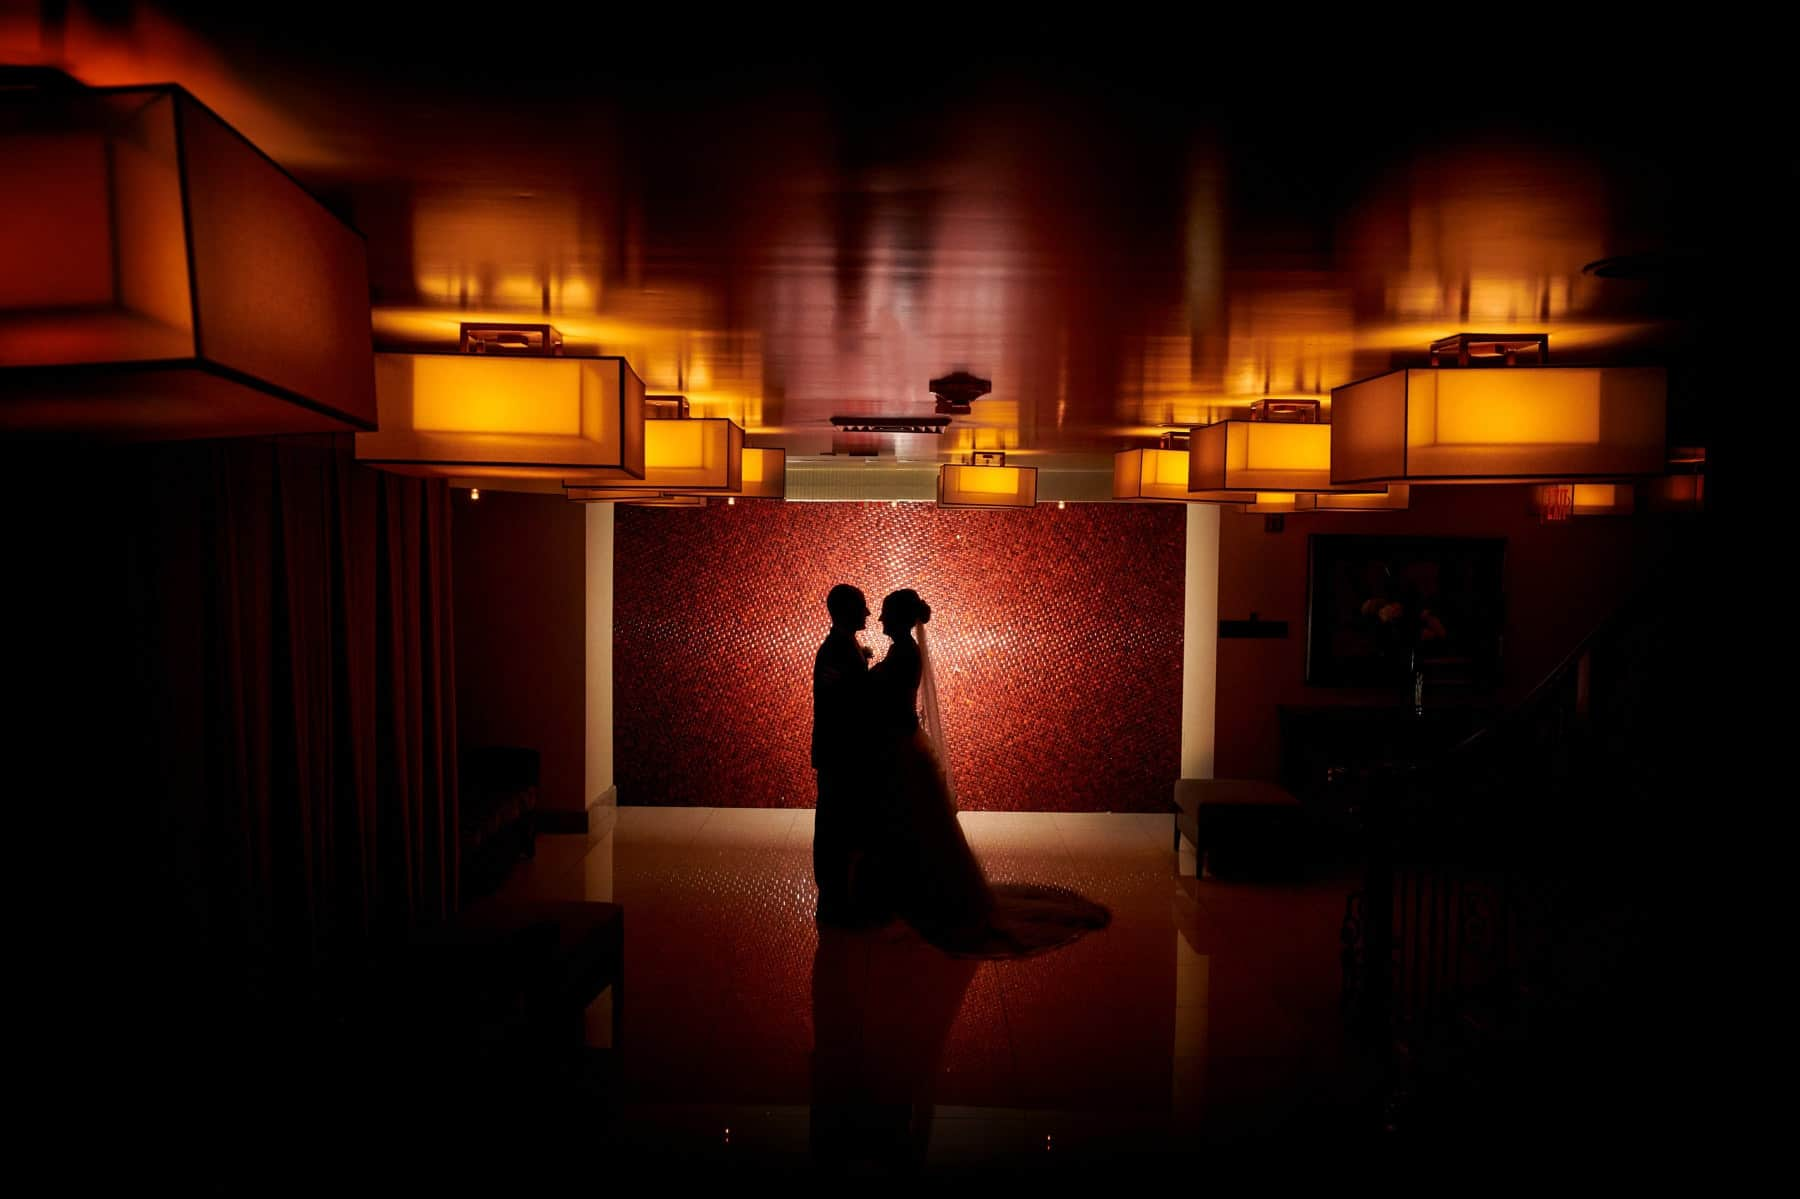 silhouette wedding photo at The Imperia